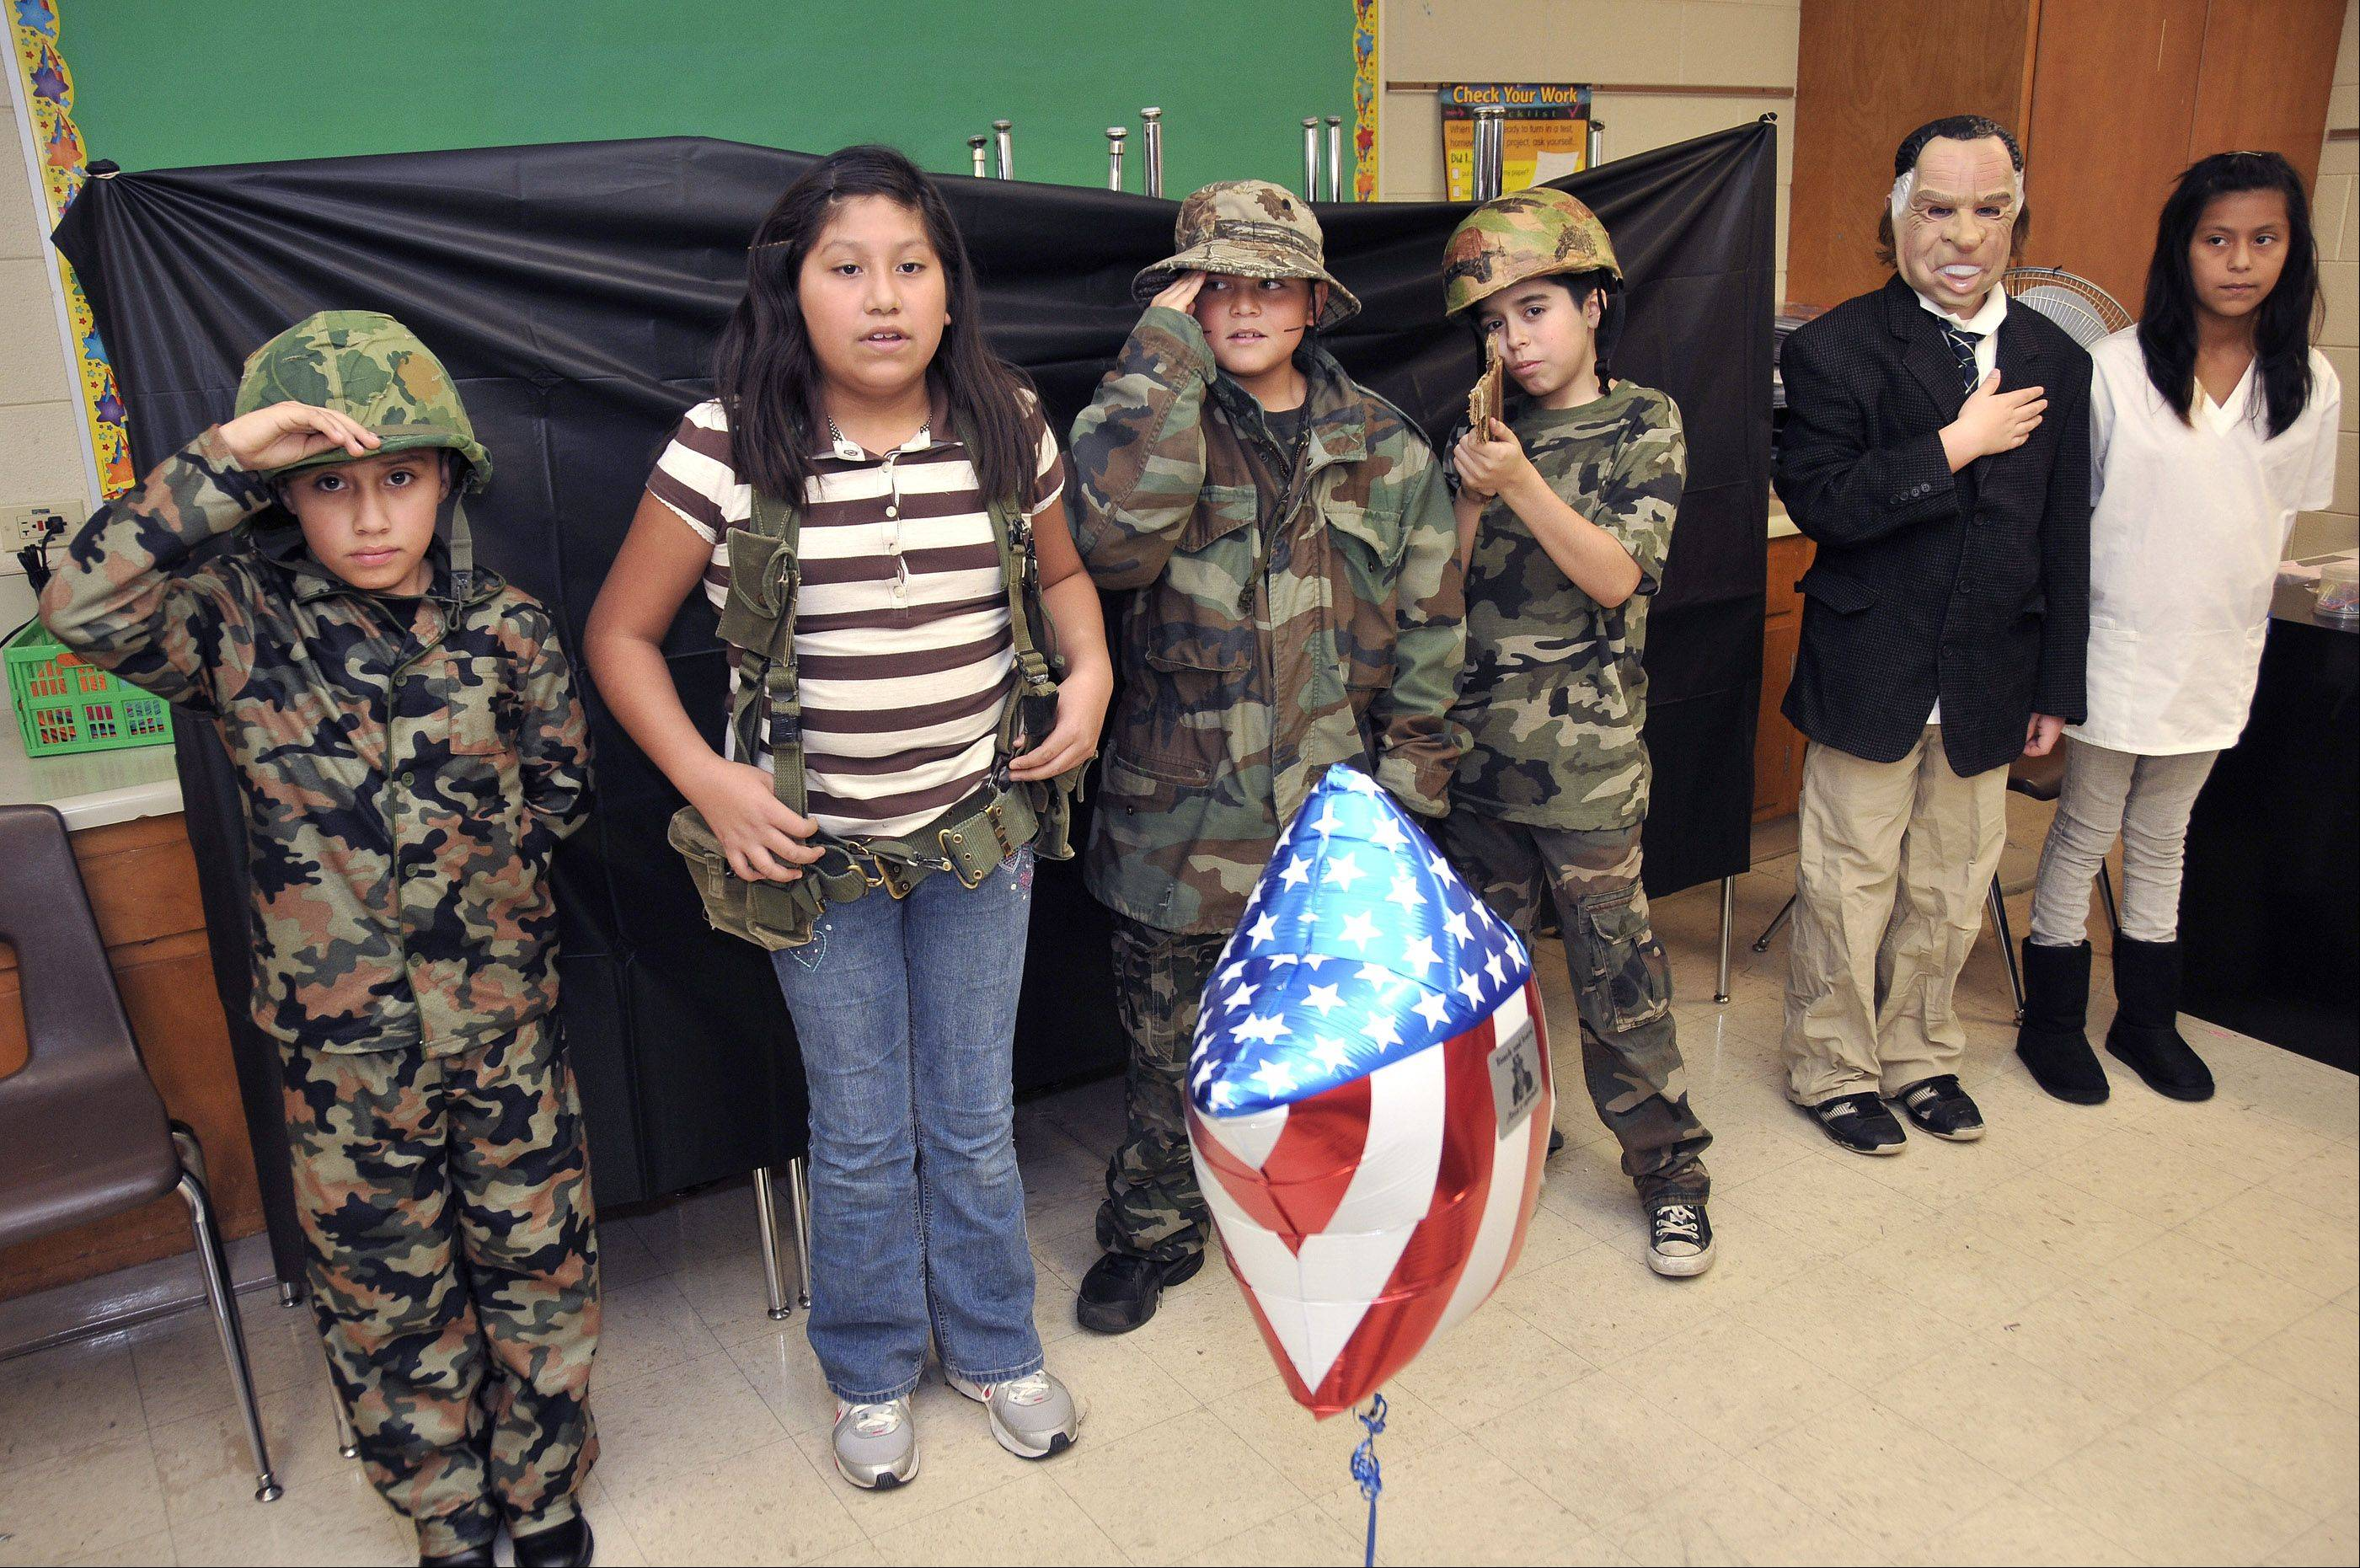 Making a presentation on the Vietnam War are, from left, Jose Rubio, Faviola Cielo, Alonso Salinas, Brandon, Garcia, Nathan Bradley as Richard Nixon, and Guadalupe Carrera.